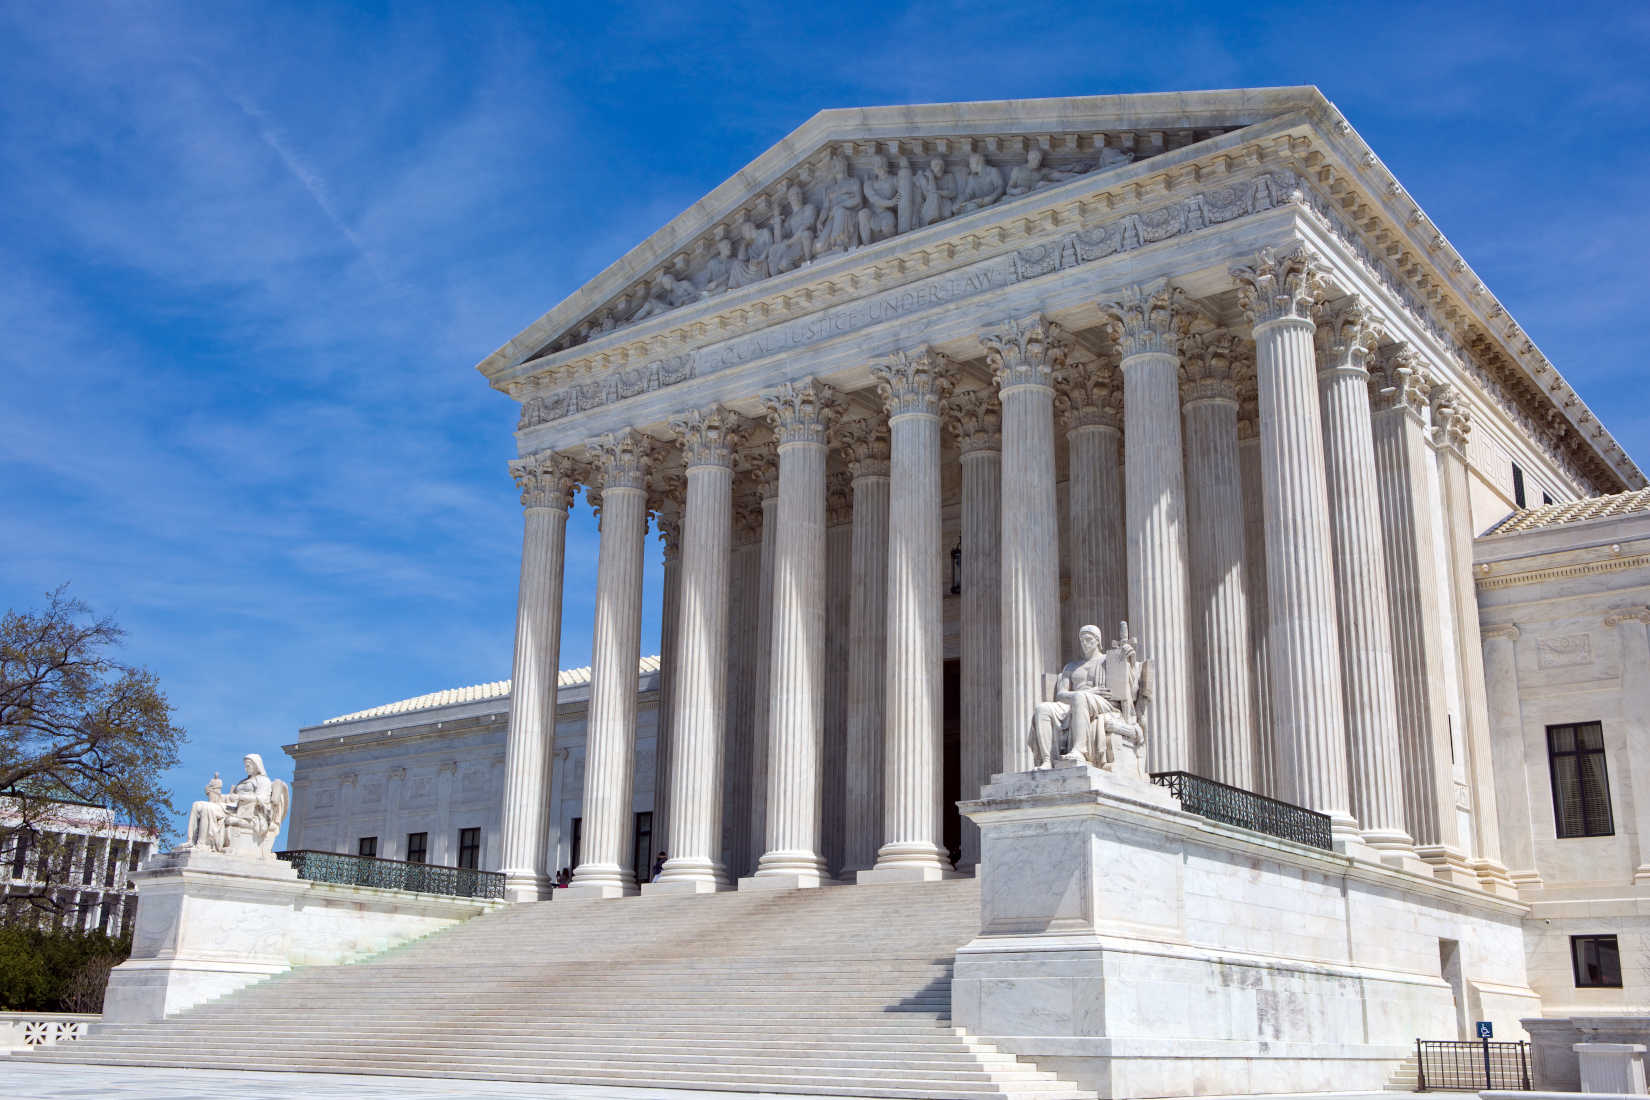 WIN: SCOTUS Says California Cannot Demand Charitable Donors' Info